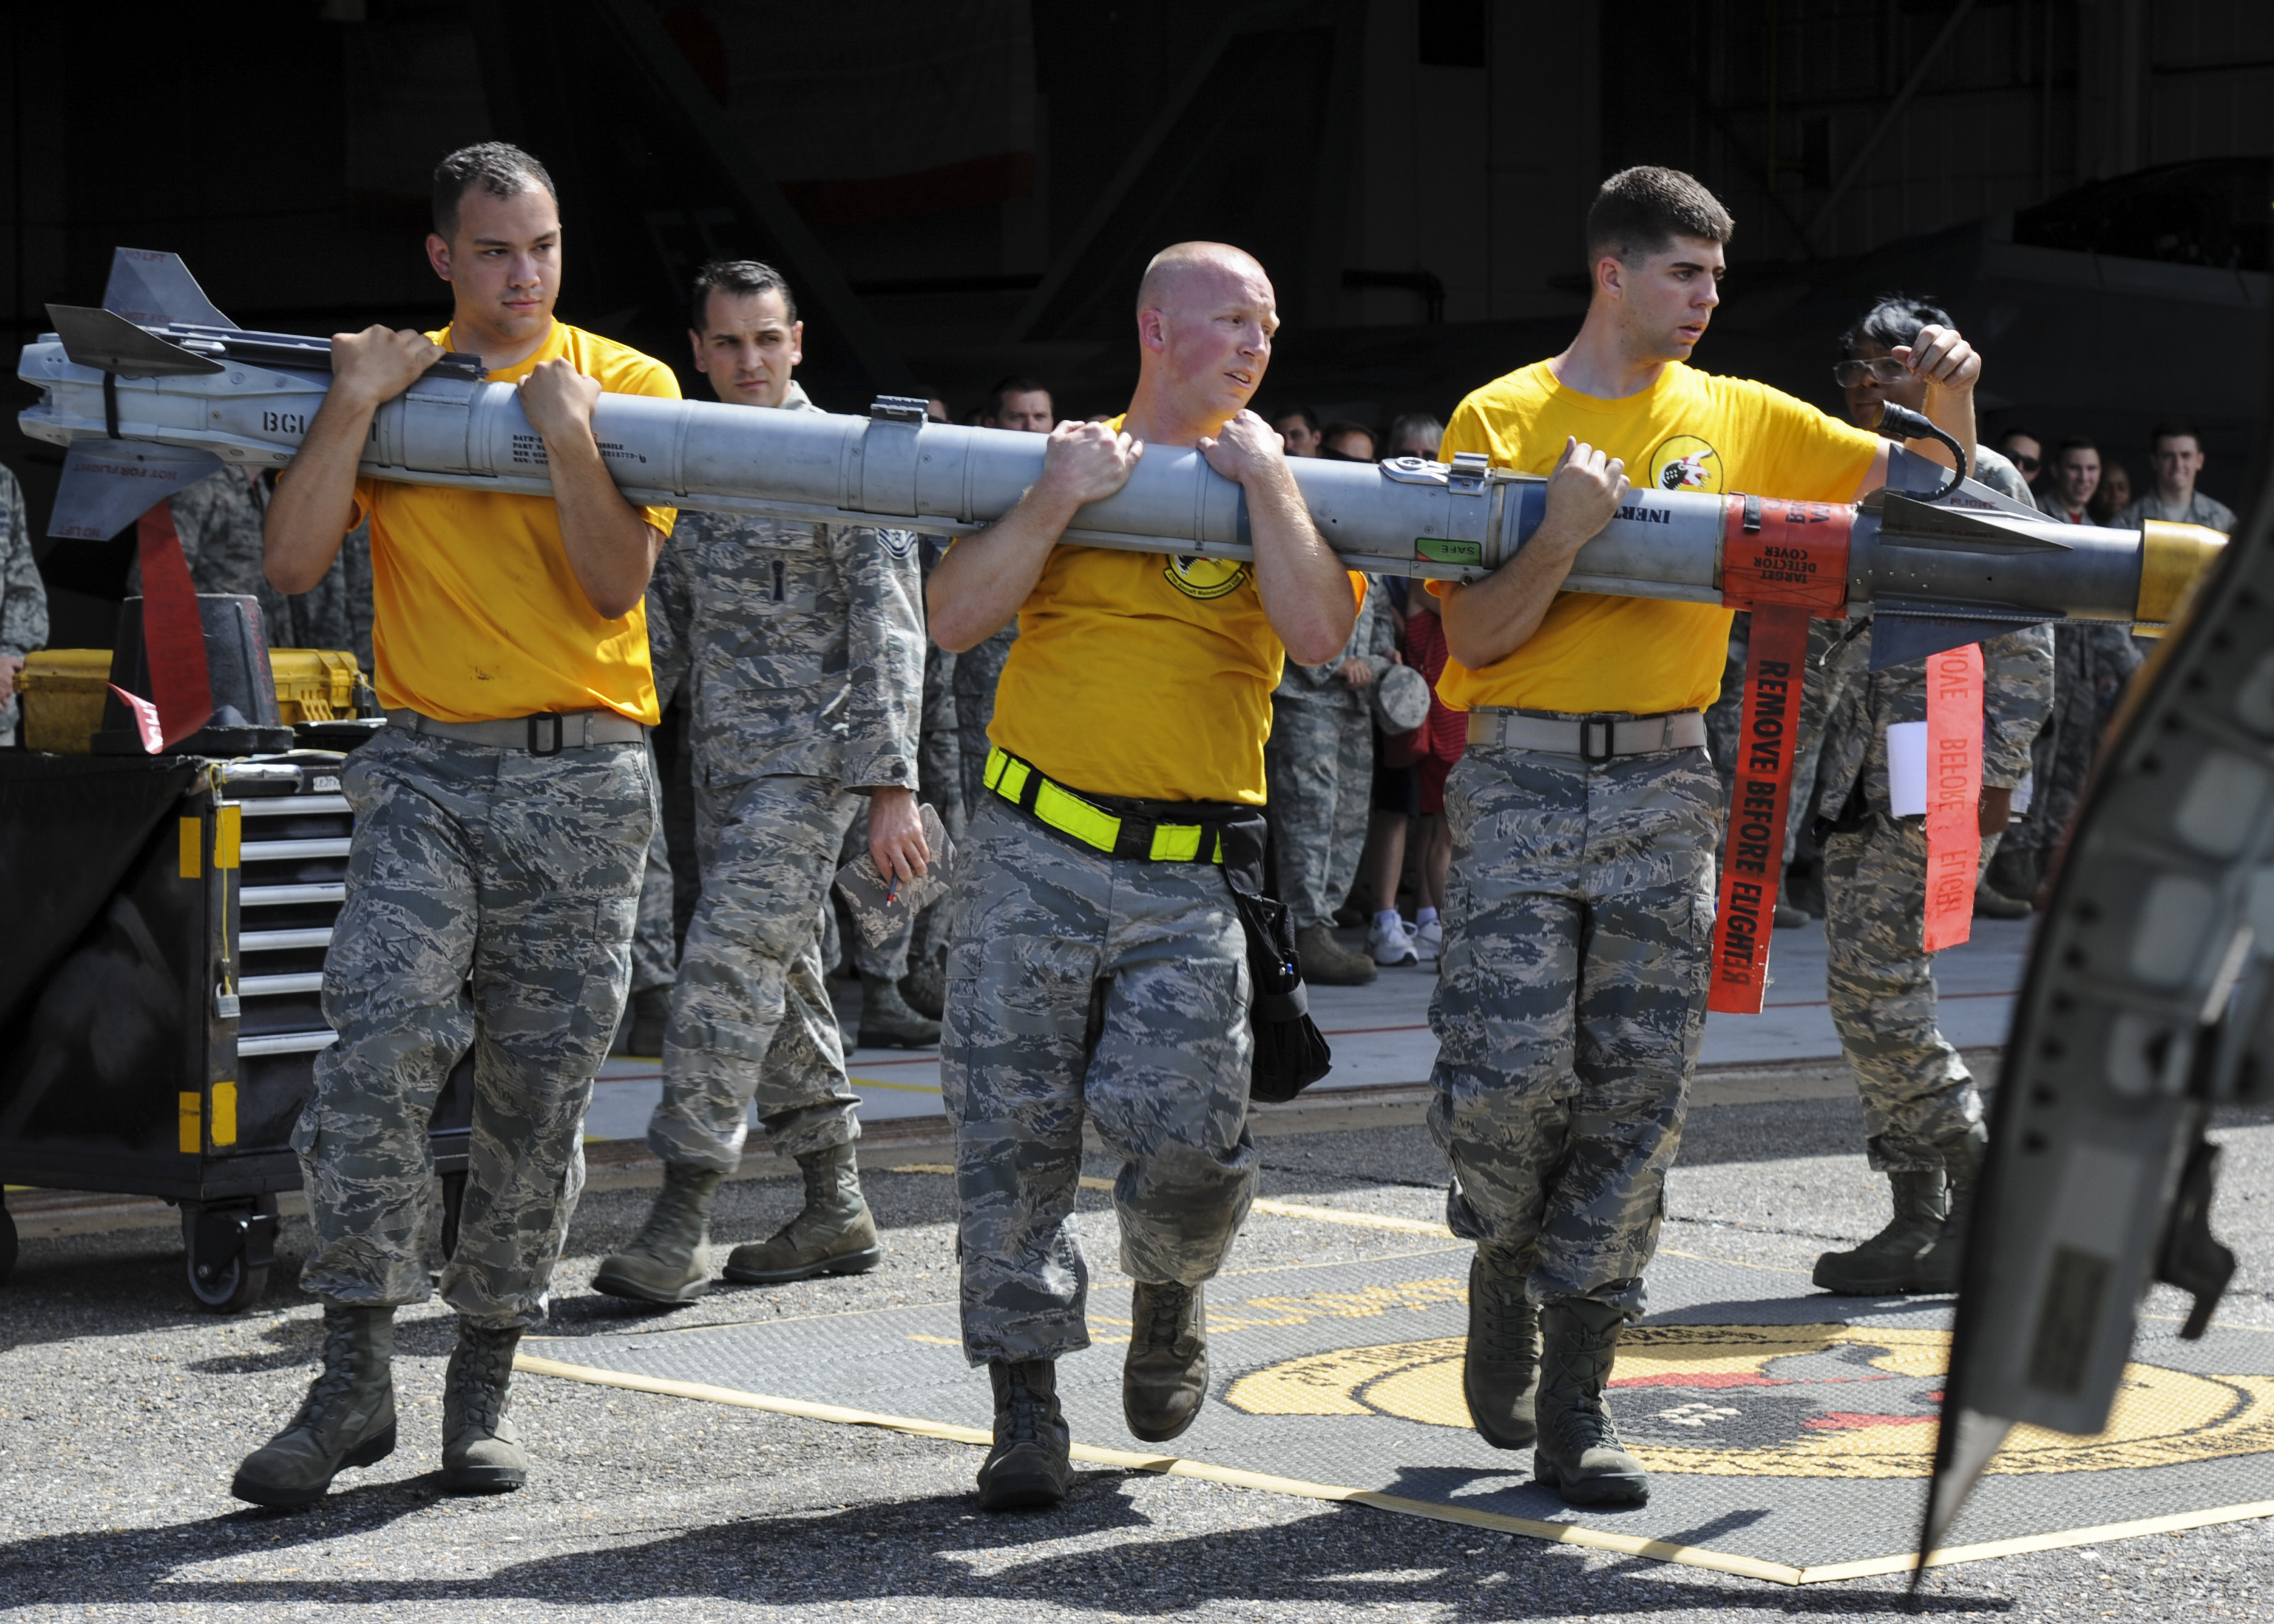 Lock and load: 94 AMU wins load competition